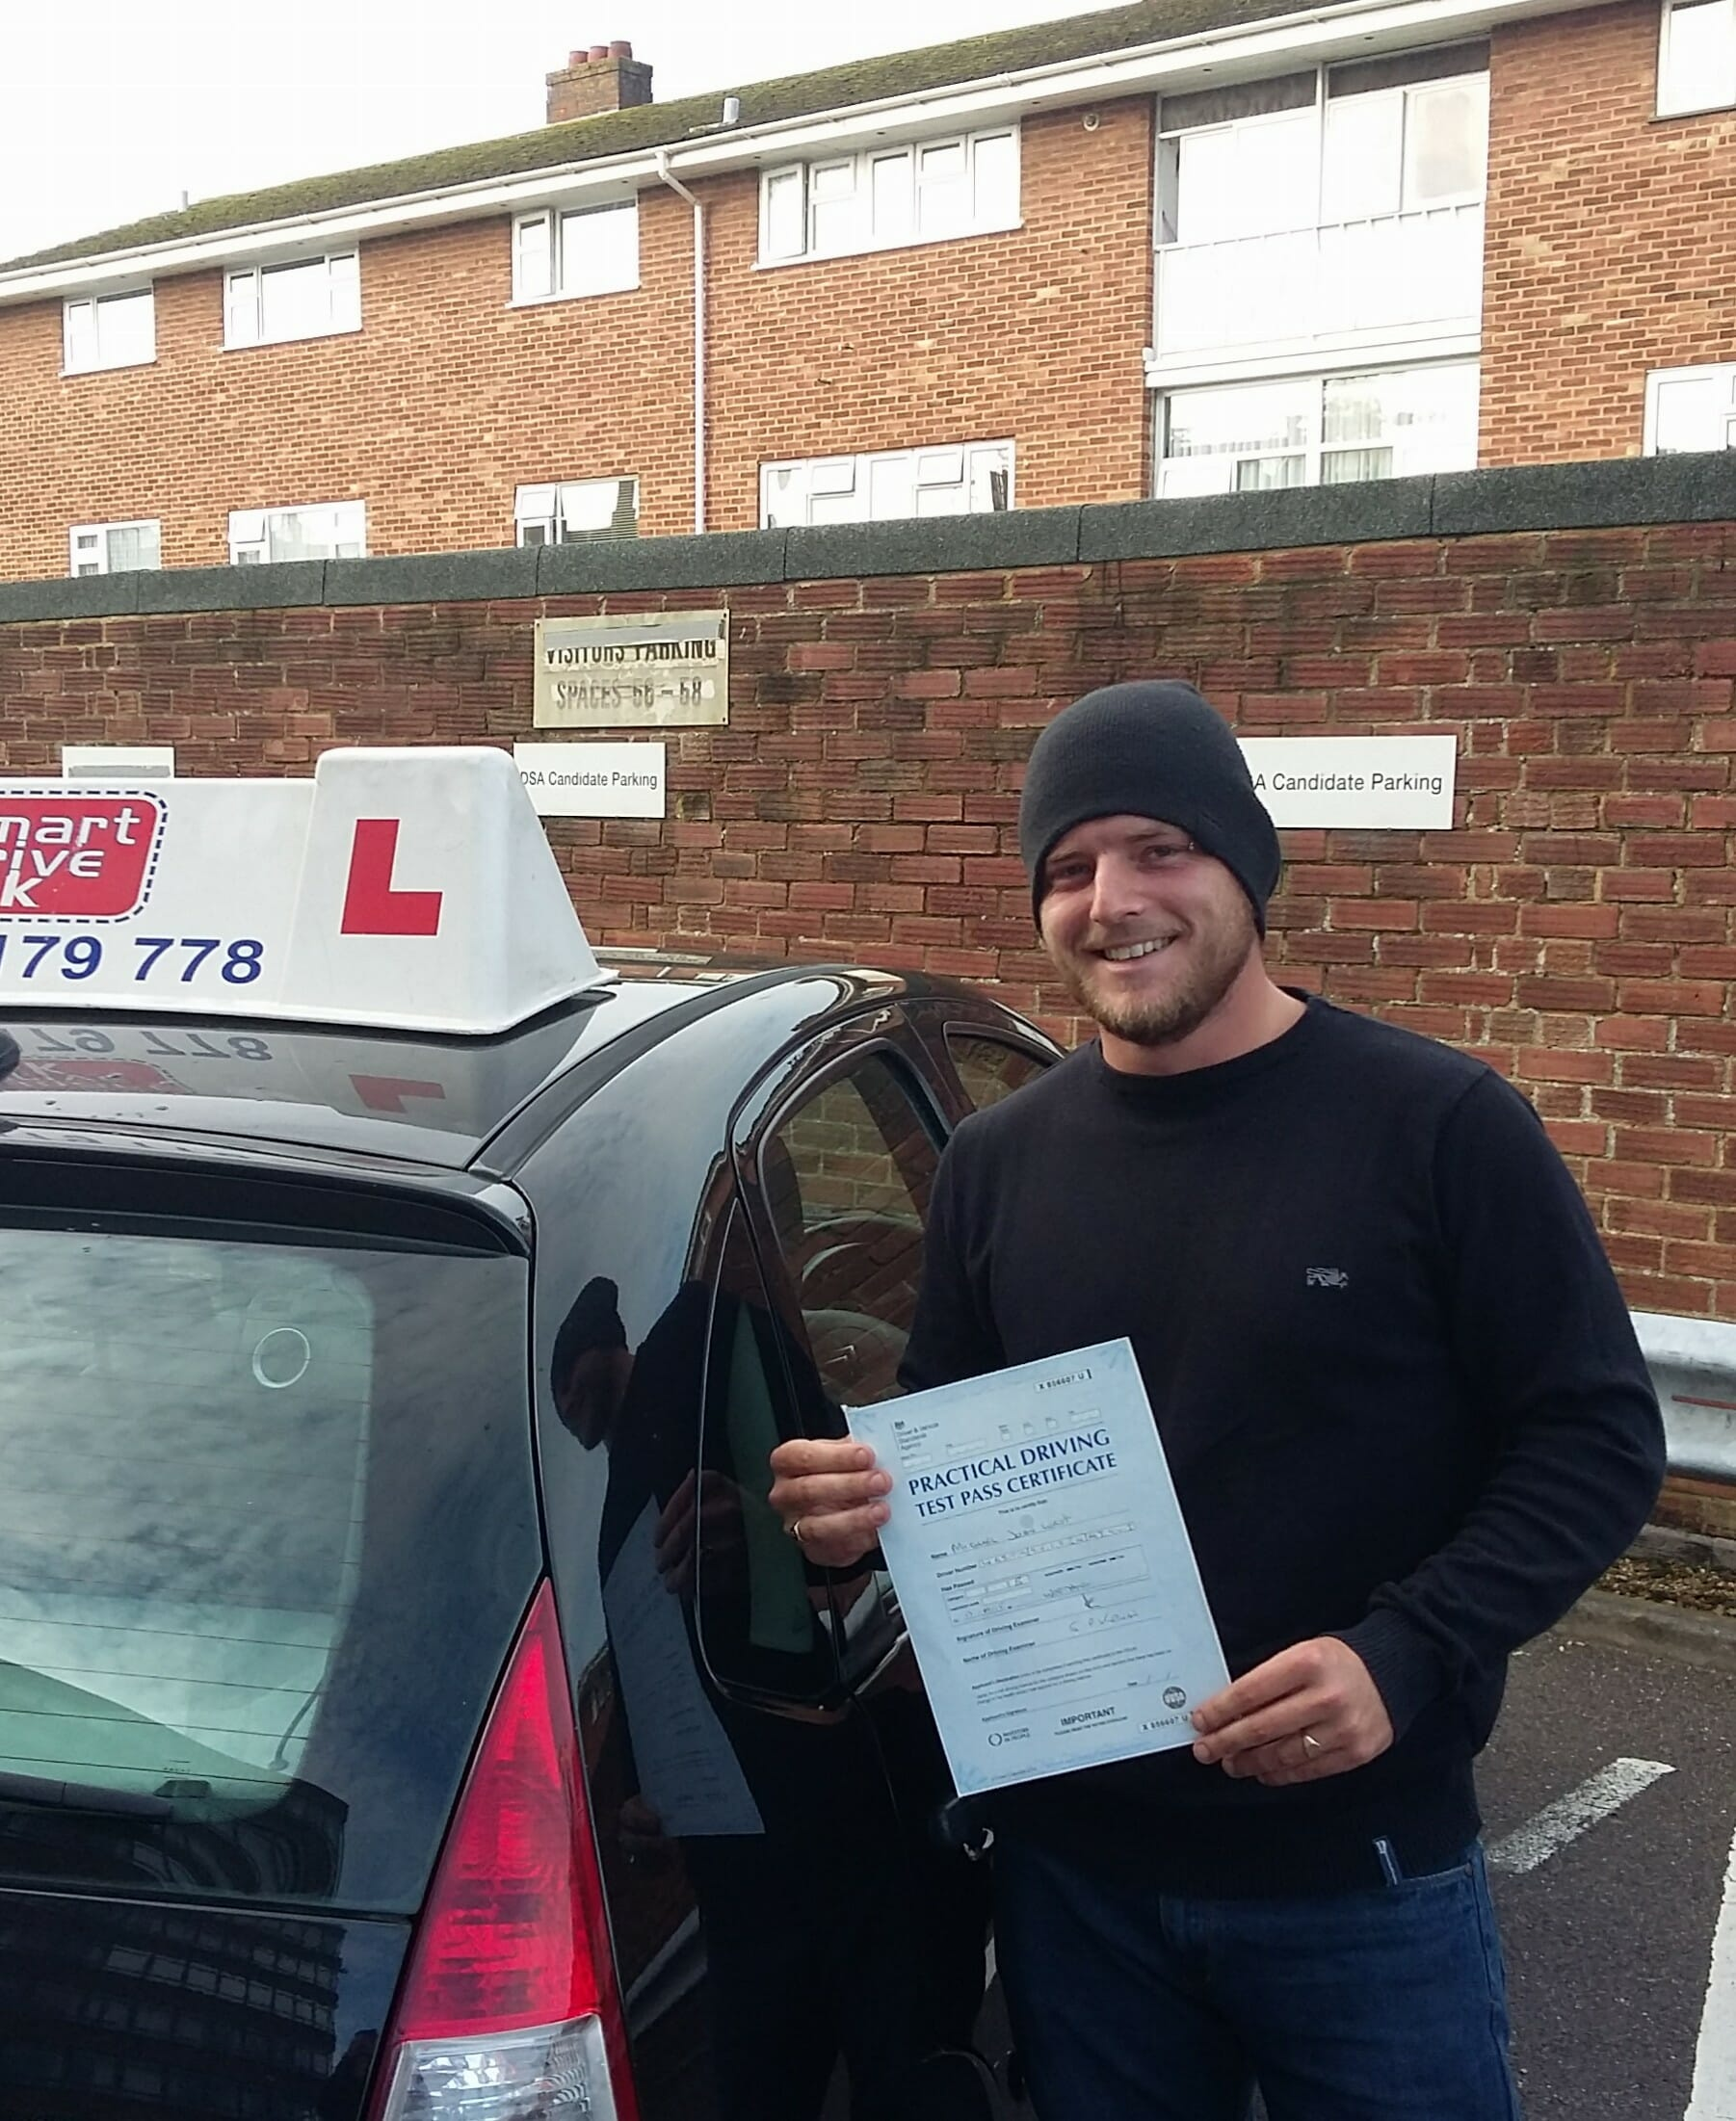 Congratulations to Mike West from Worthing